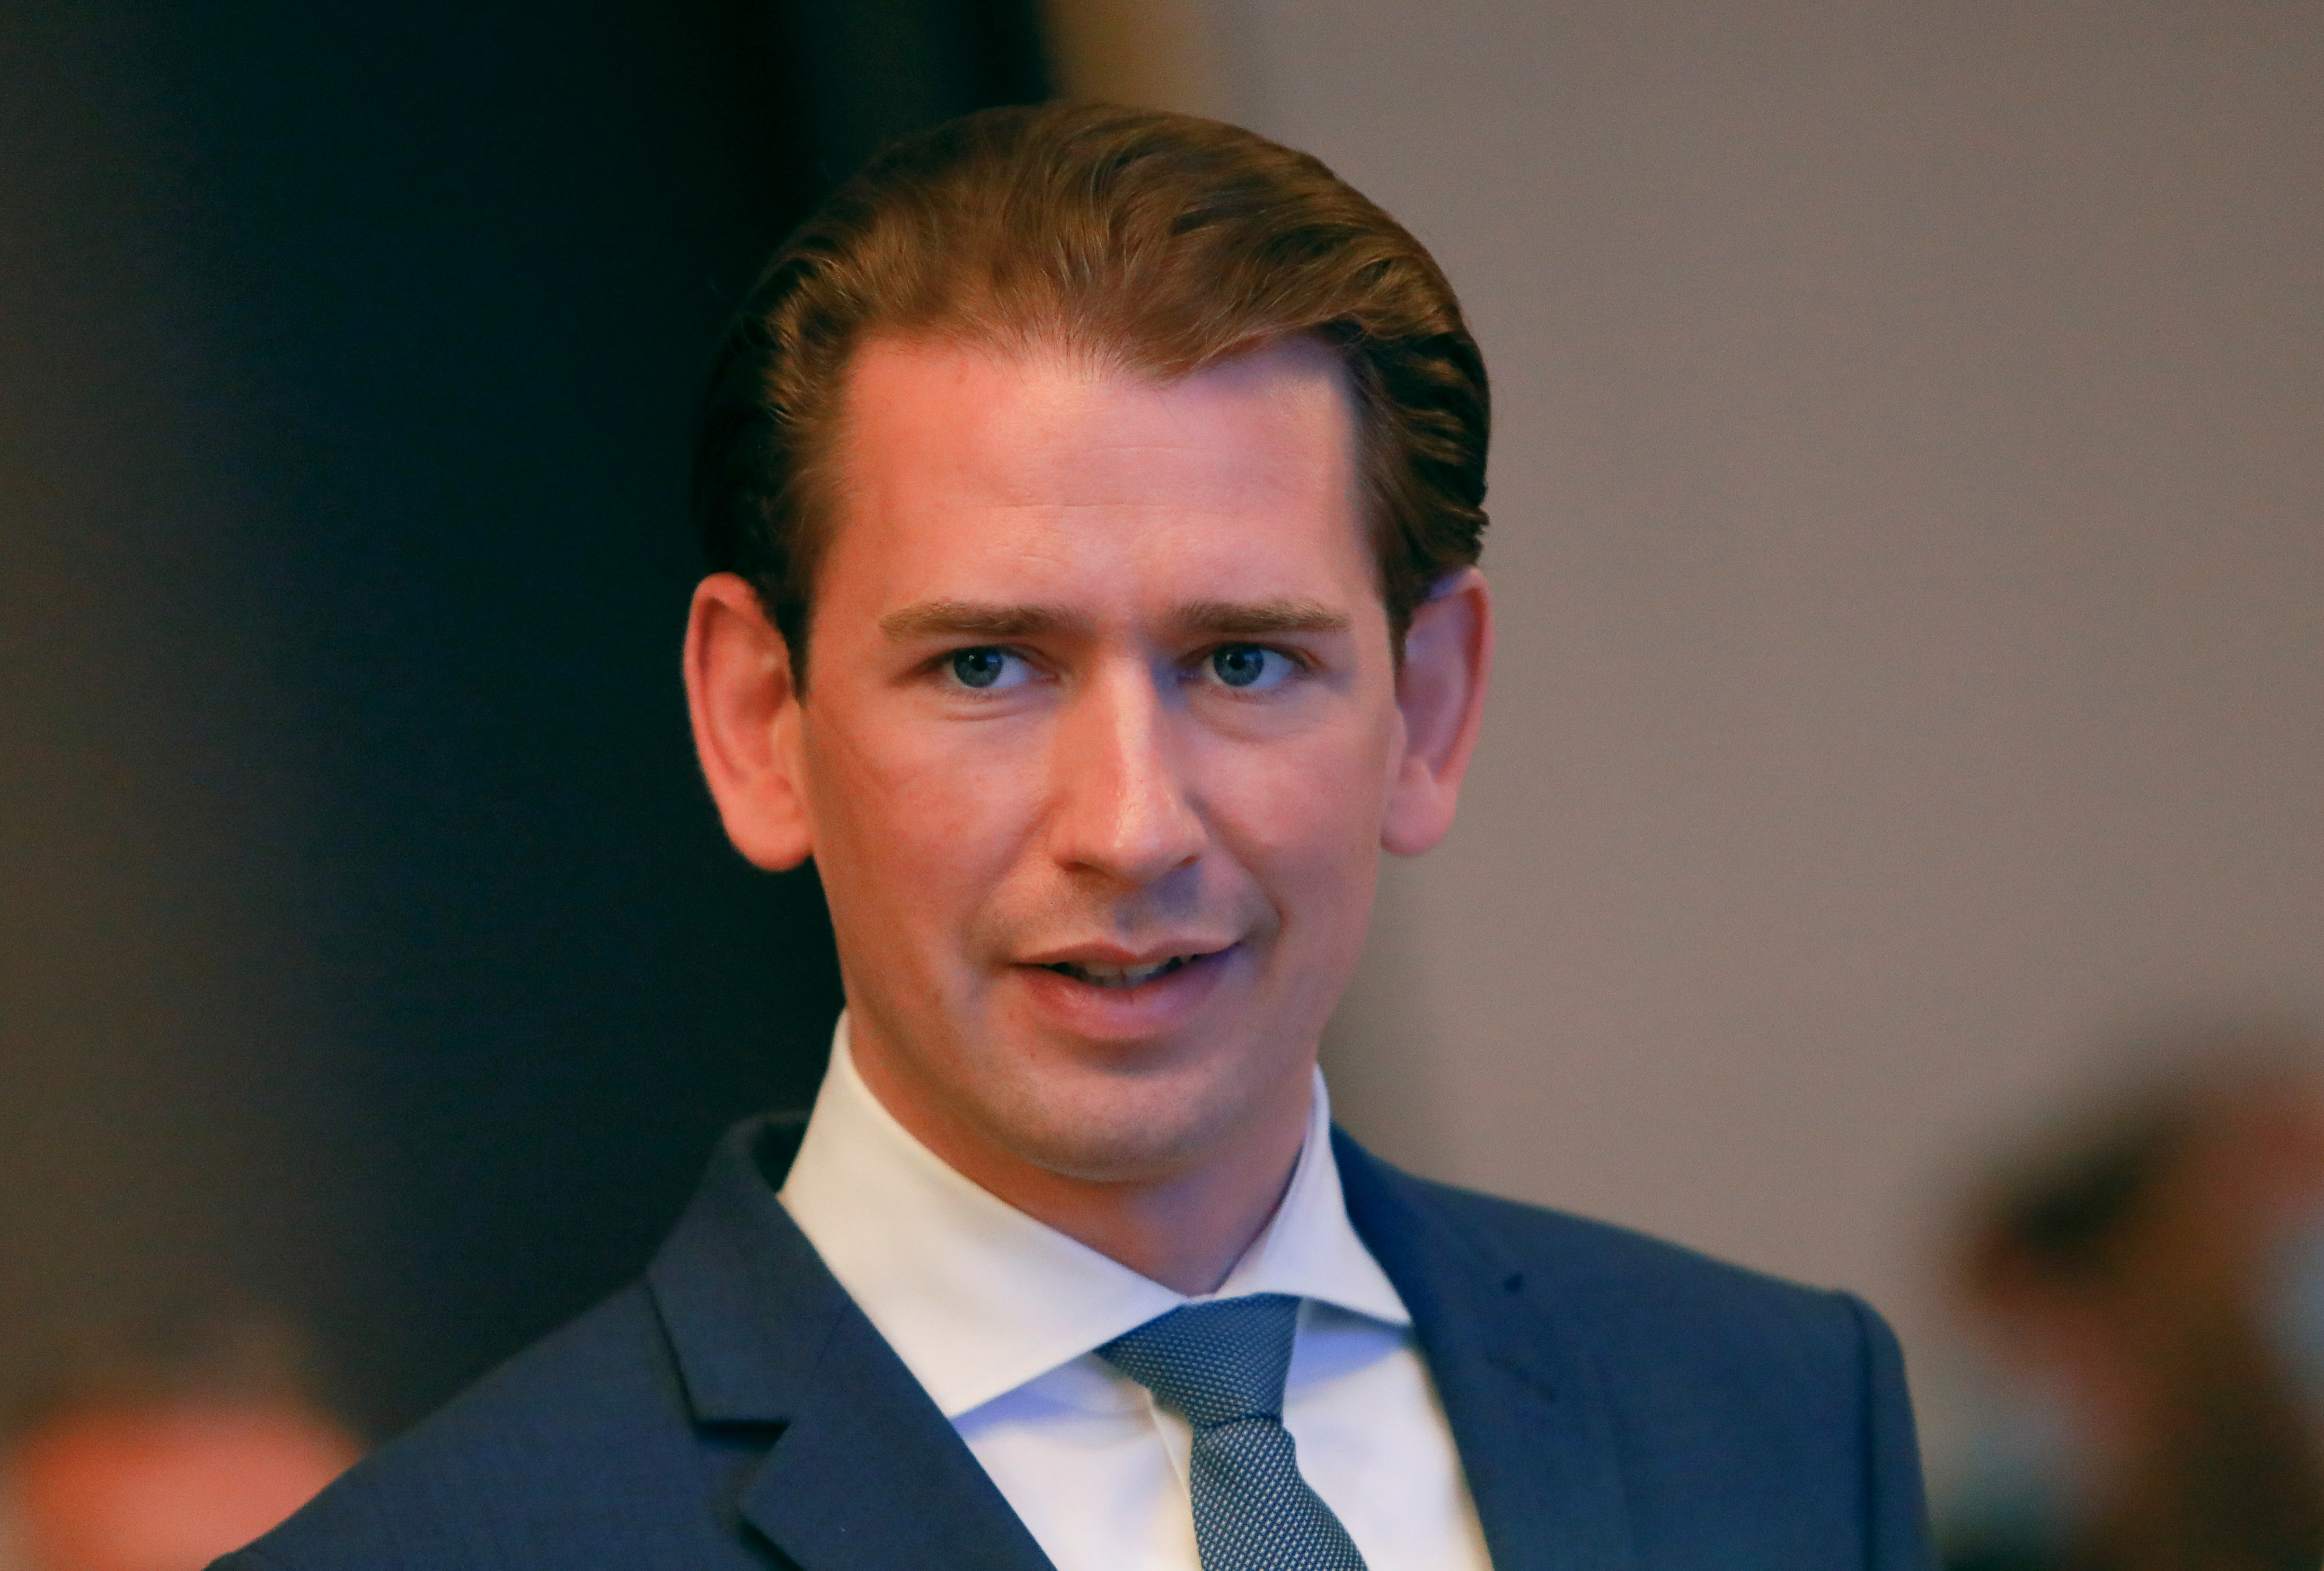 Austrian Chancellor Sebastian Kurz arrives for a European People's Party (EPP) meeting in Berlin, Germany, September 9, 2021. REUTERS/Michele Tantussi/File Photo